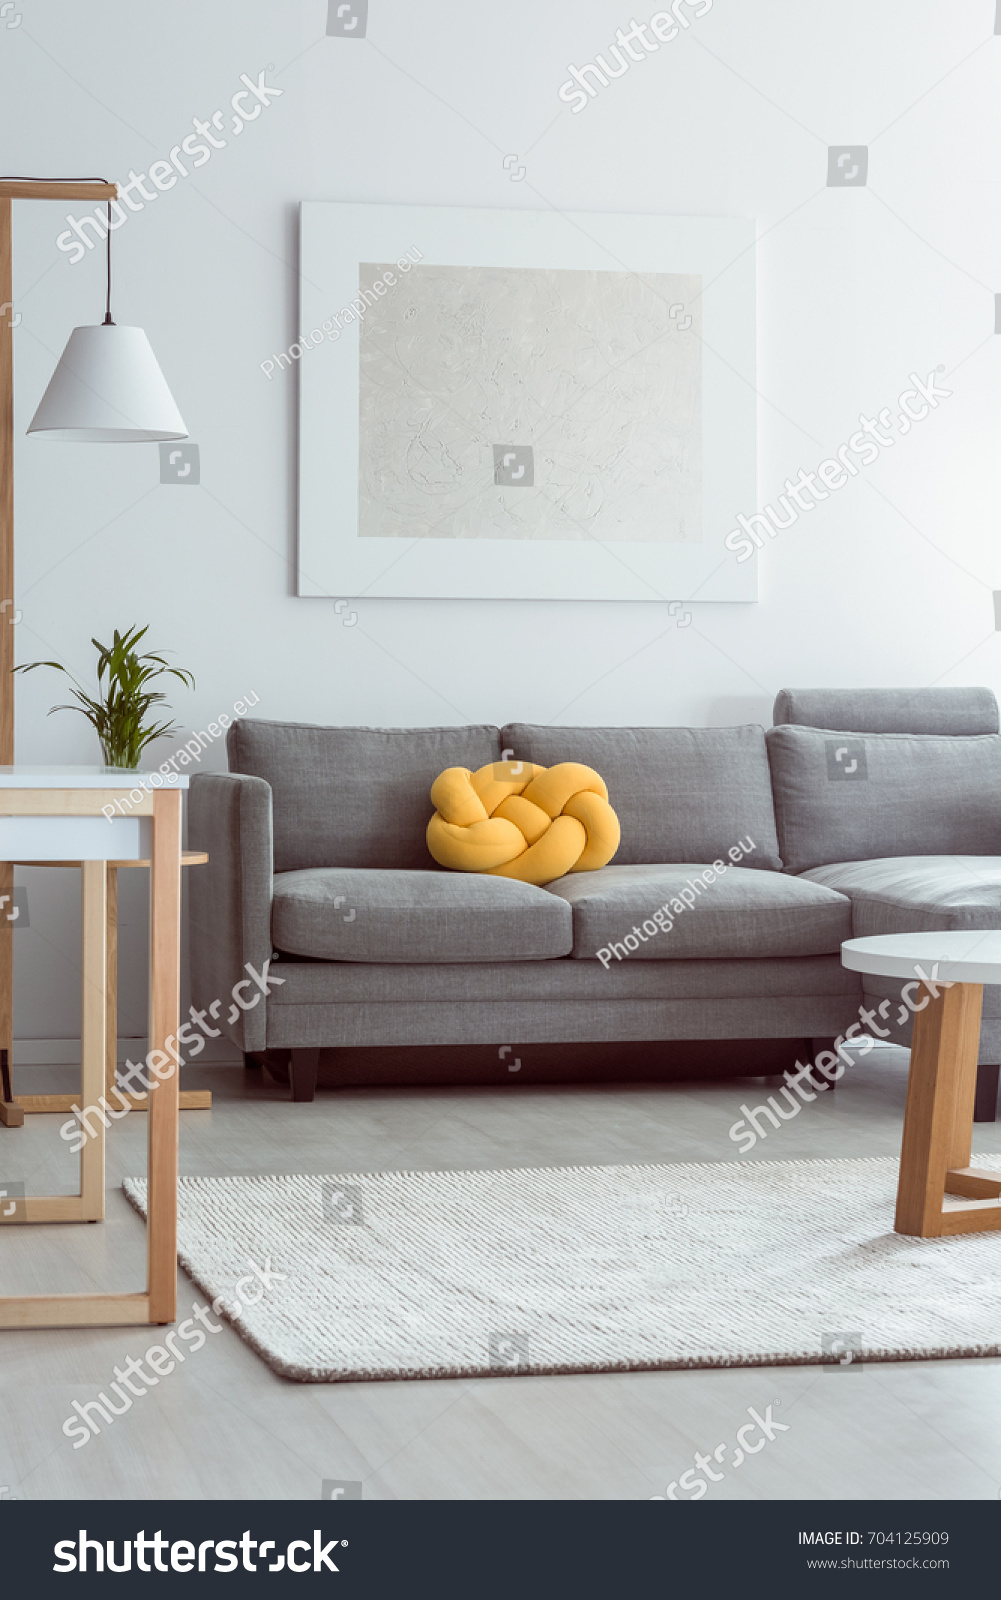 Yellow Knot Pillow On Grey Sofa Stock Photo Edit Now 704125909